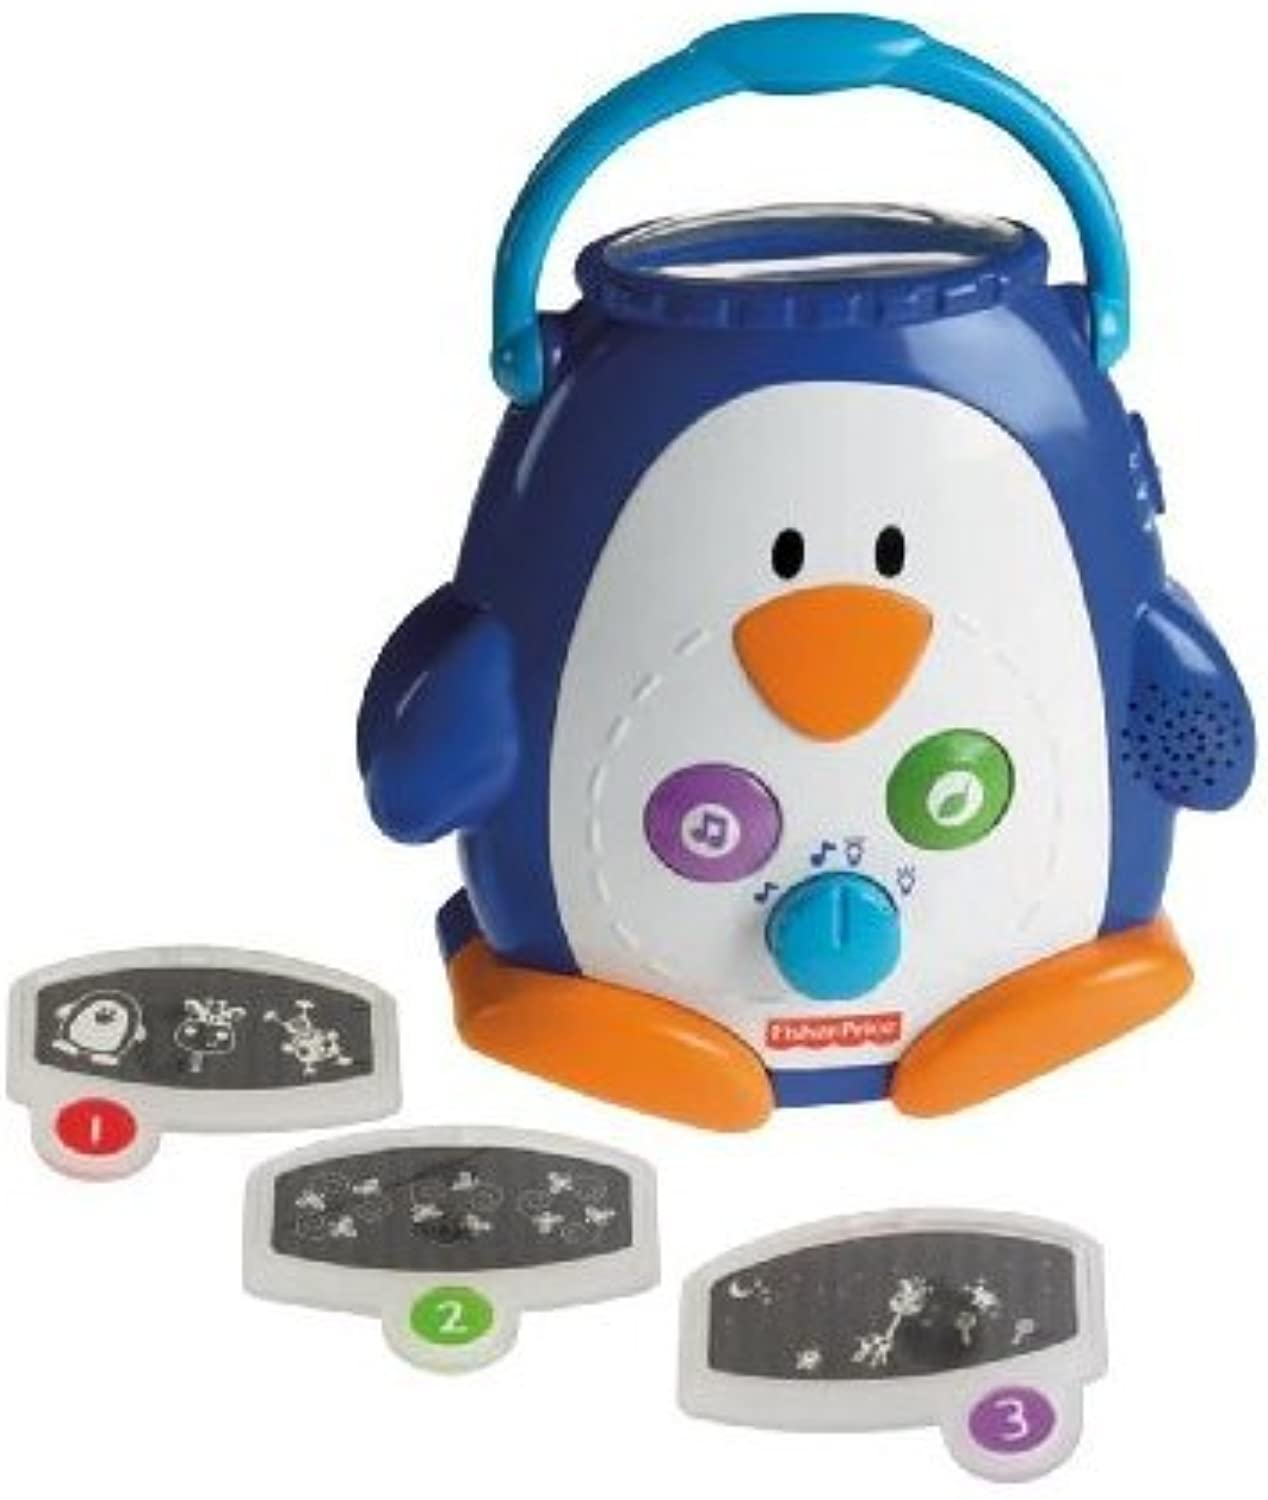 FisherPrice Discover 'n Grow SelectaShow Soother, fisher, price, glow, worm, lullaby